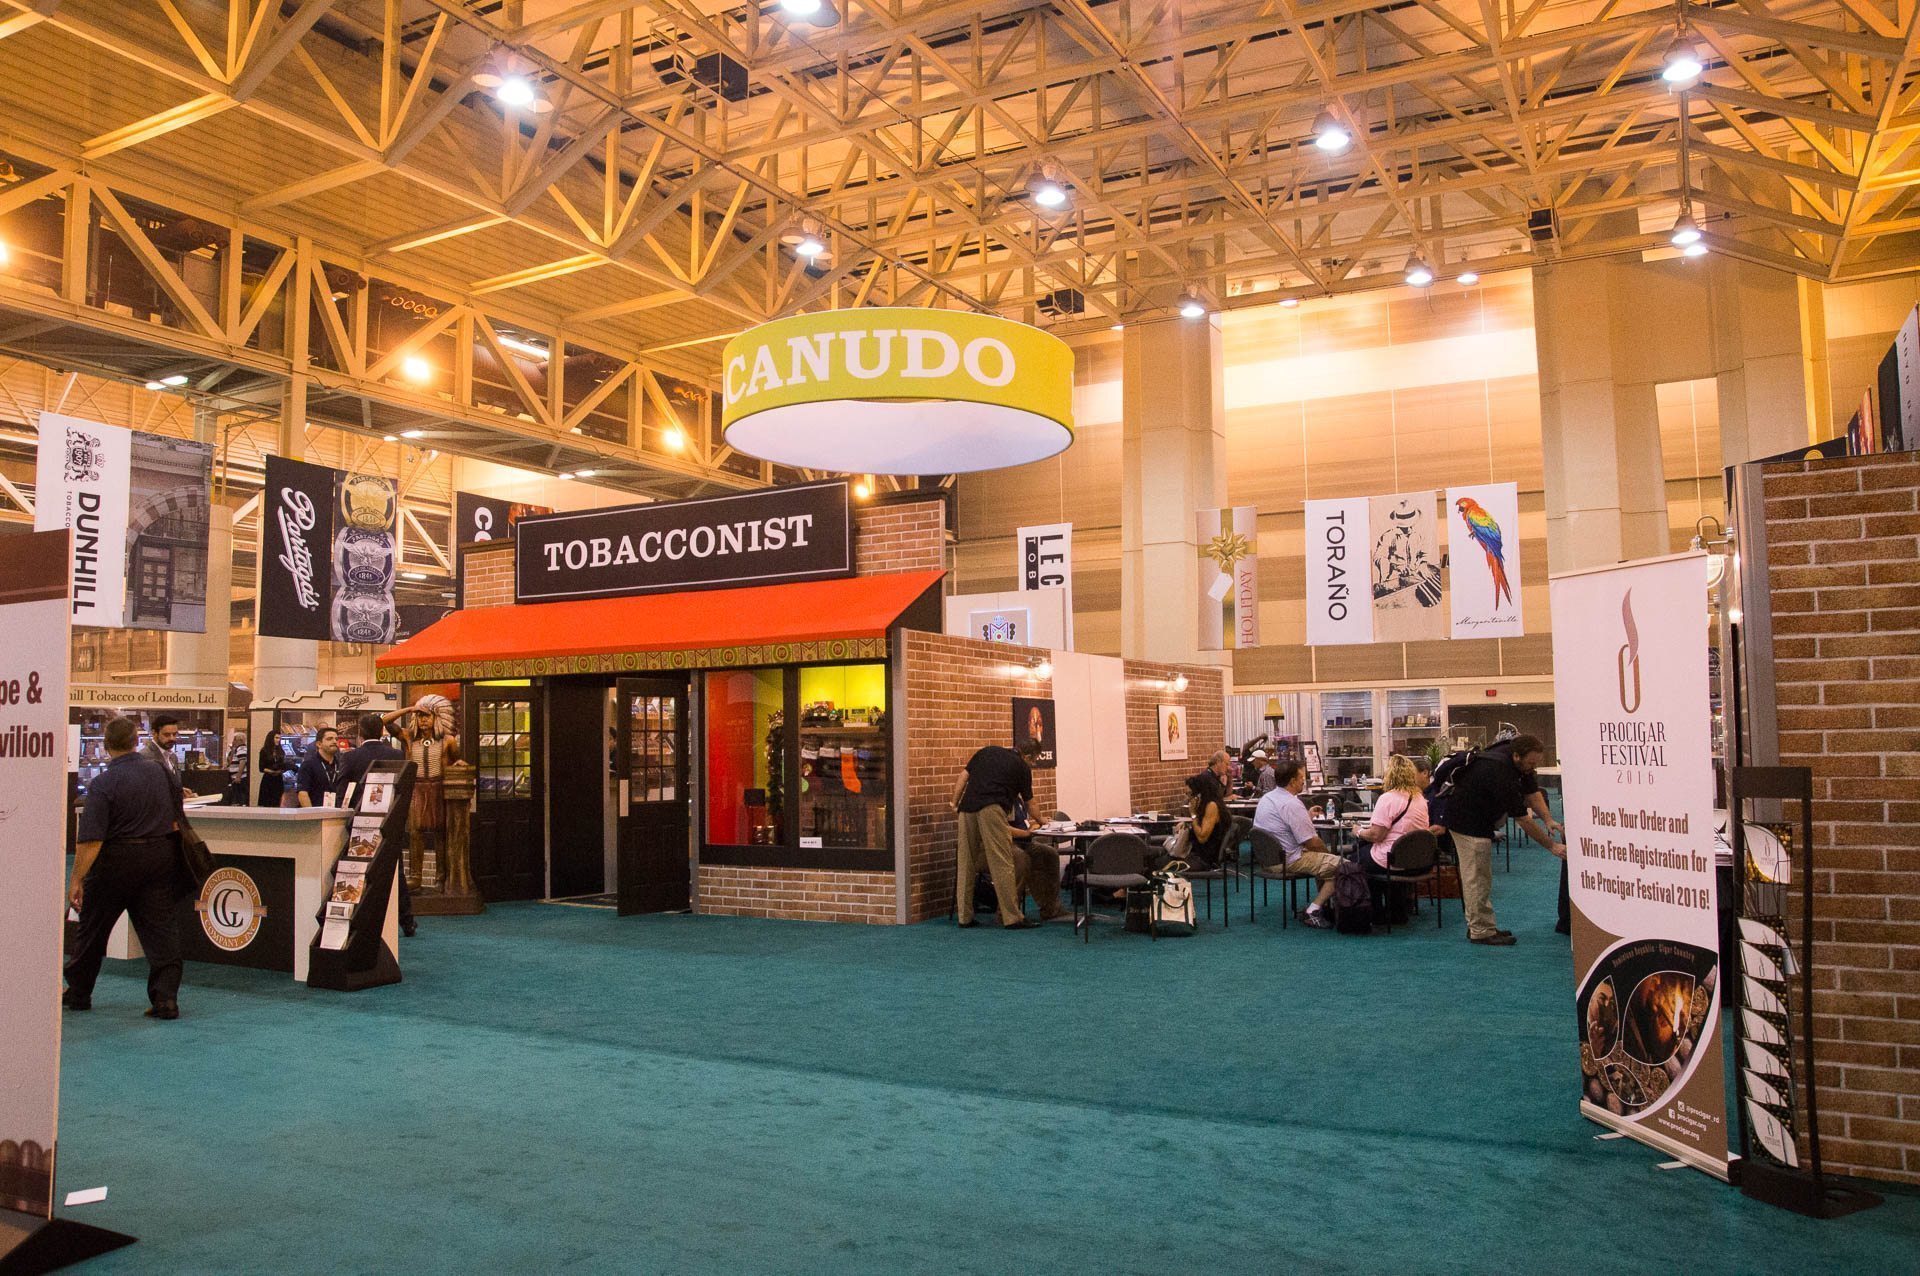 IPCPR: The Show in Pictures 2015 – General Cigar